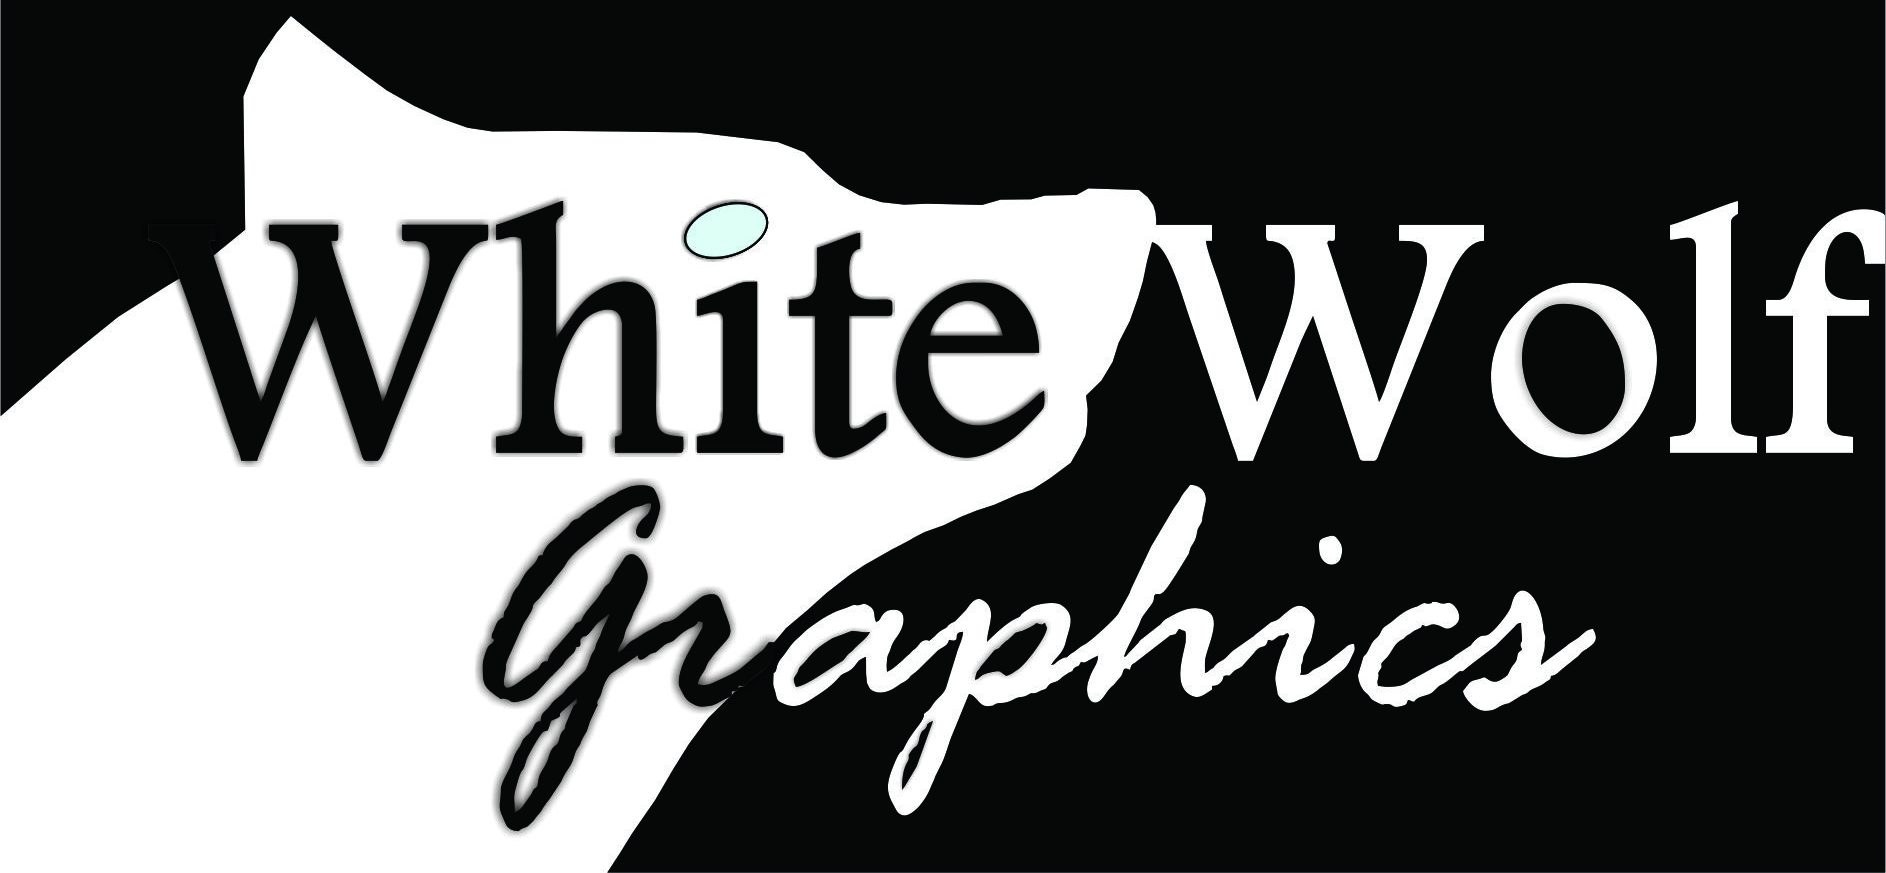 White Wolf Graphics